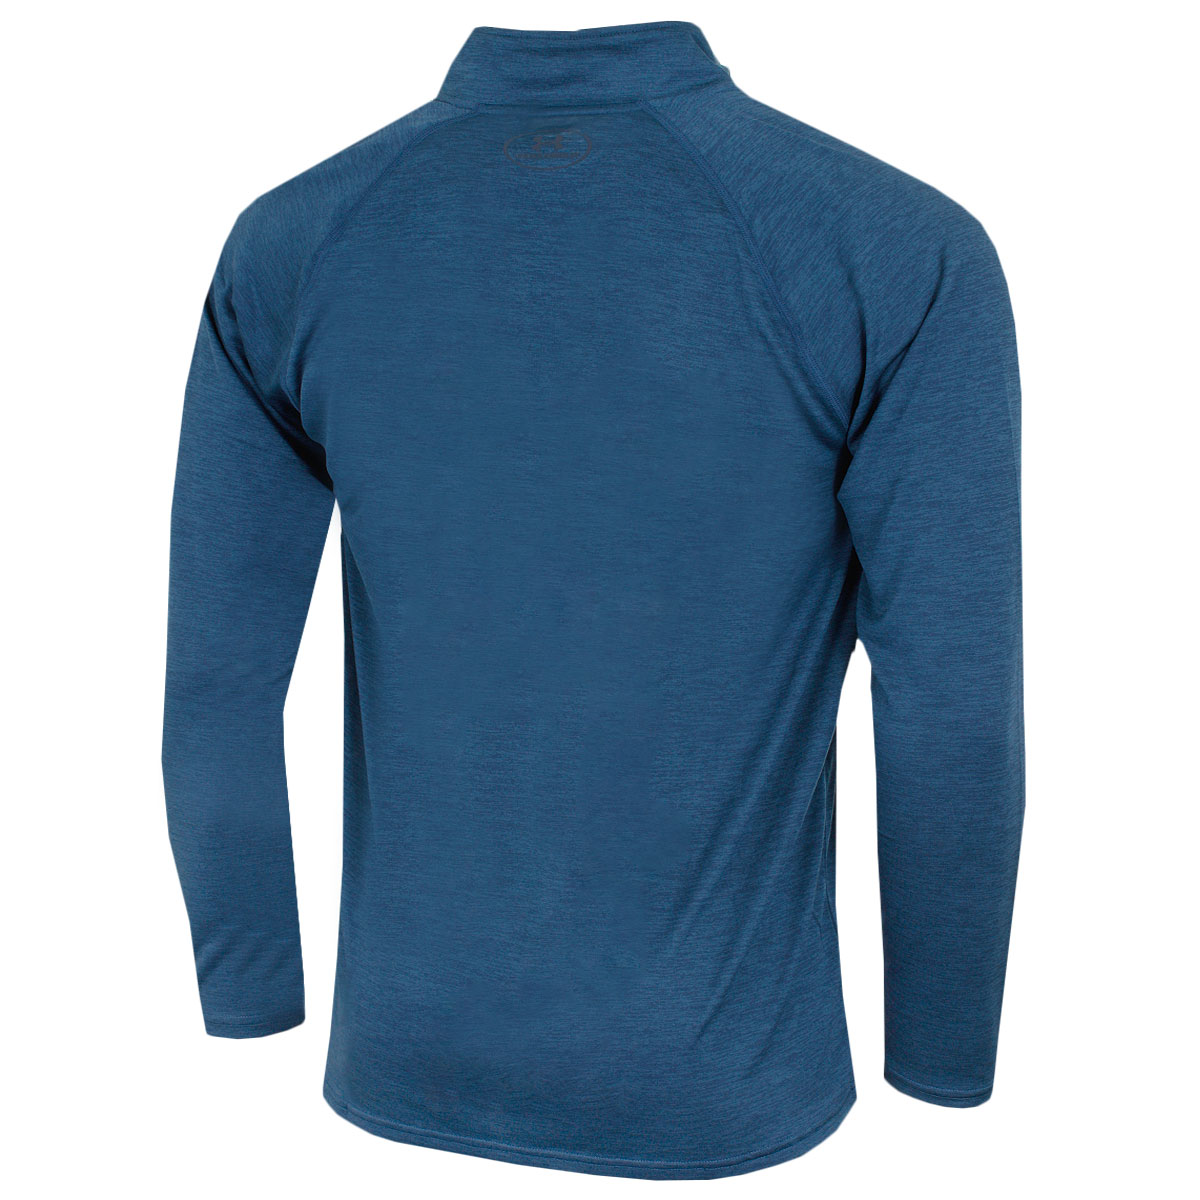 Under-Armour-Mens-UA-Tech-1-4-Zip-Long-Sleeve-Top-Workout-Layer-27-OFF-RRP thumbnail 93